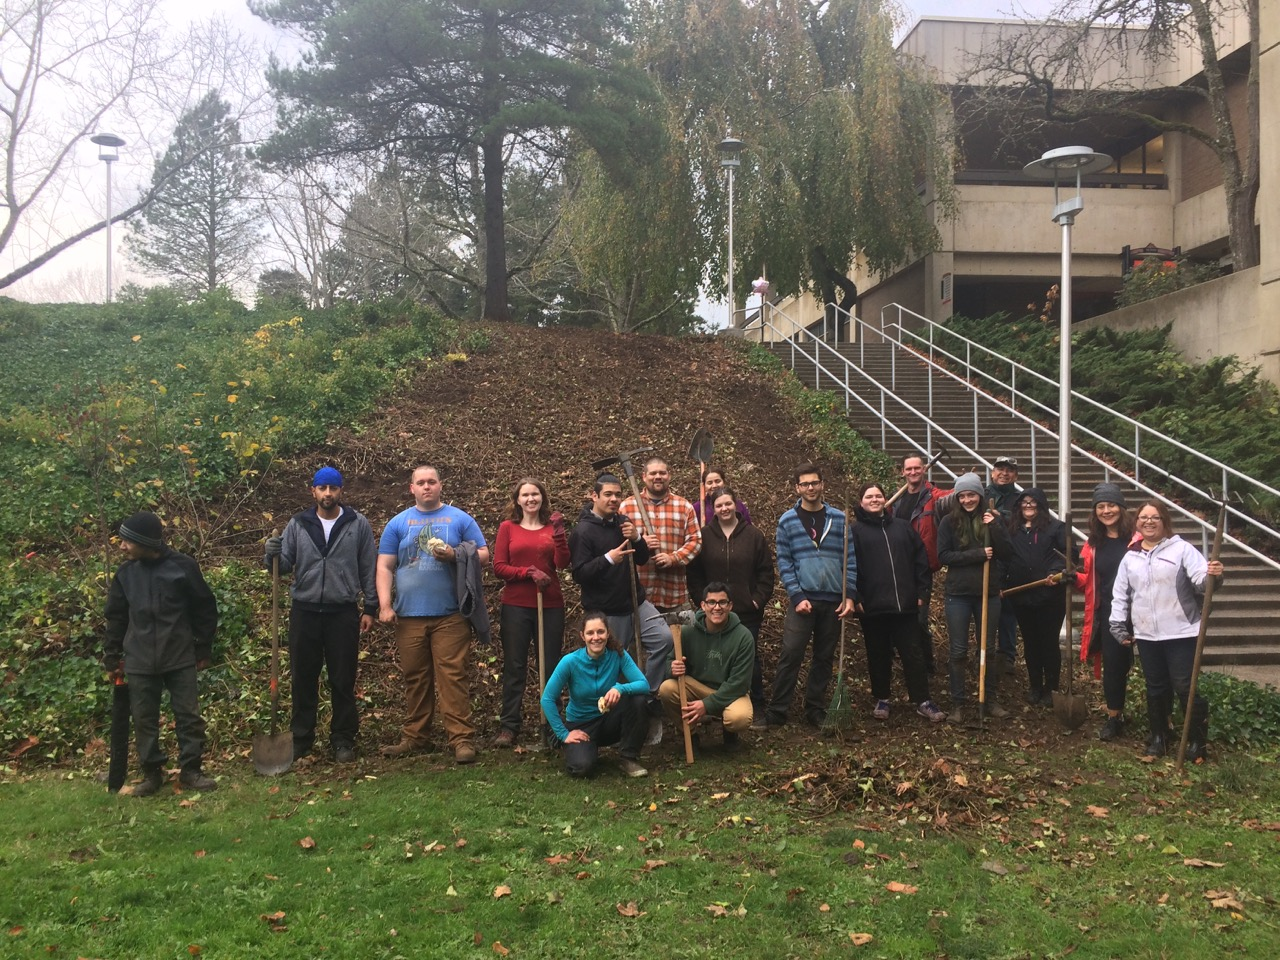 Ivy slope work party in November 2017.